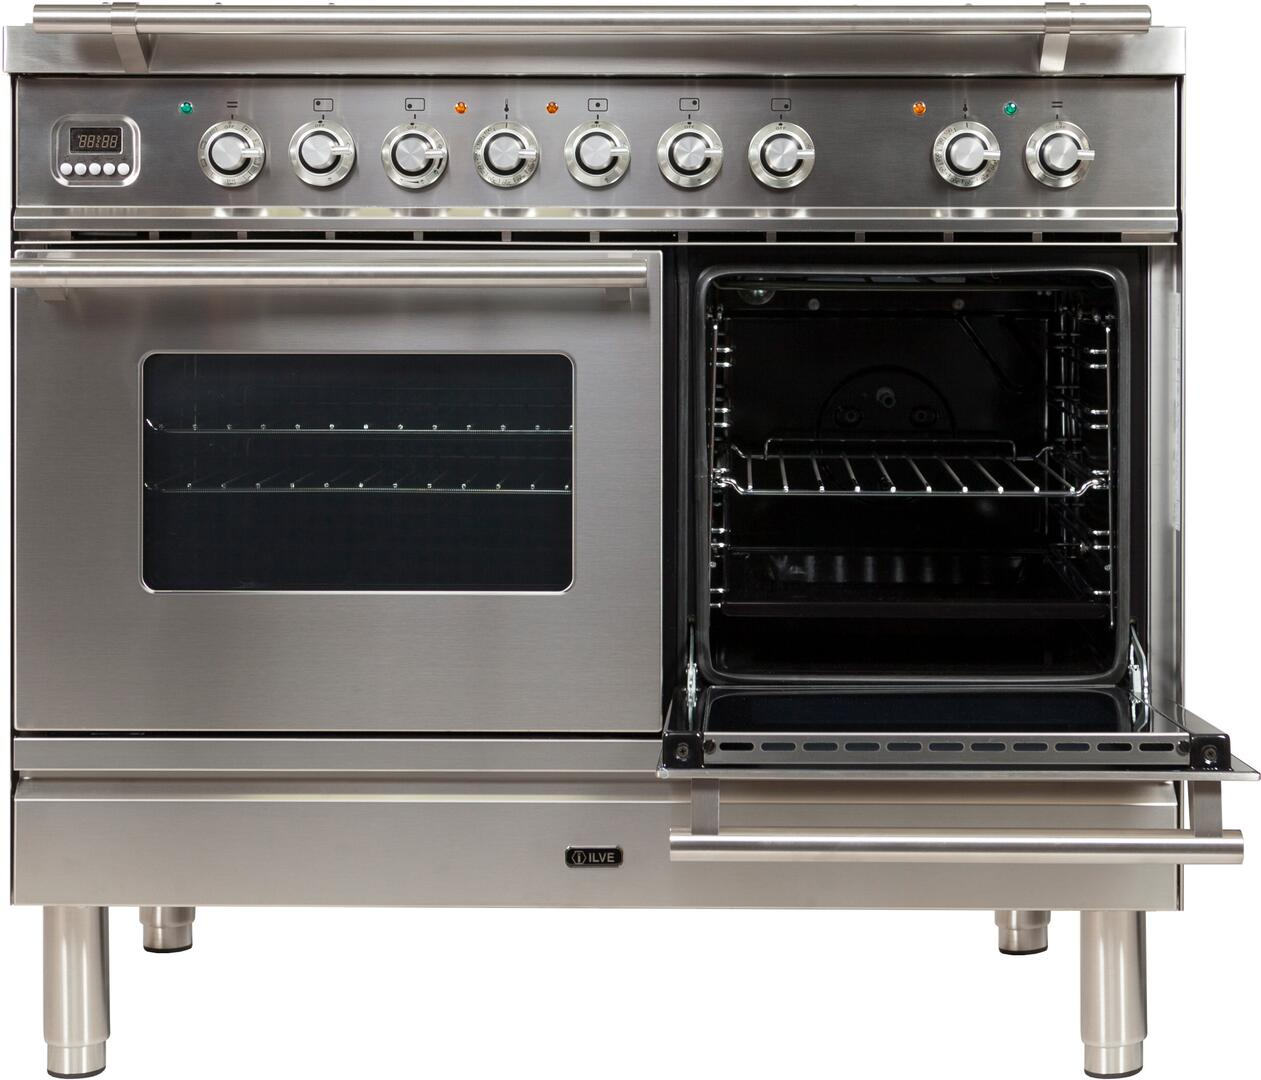 Ilve Professional Plus UPDW100FDMPILP Freestanding Dual Fuel Range Stainless Steel, UPDW100FDMPI Secondary Oven Door Opened